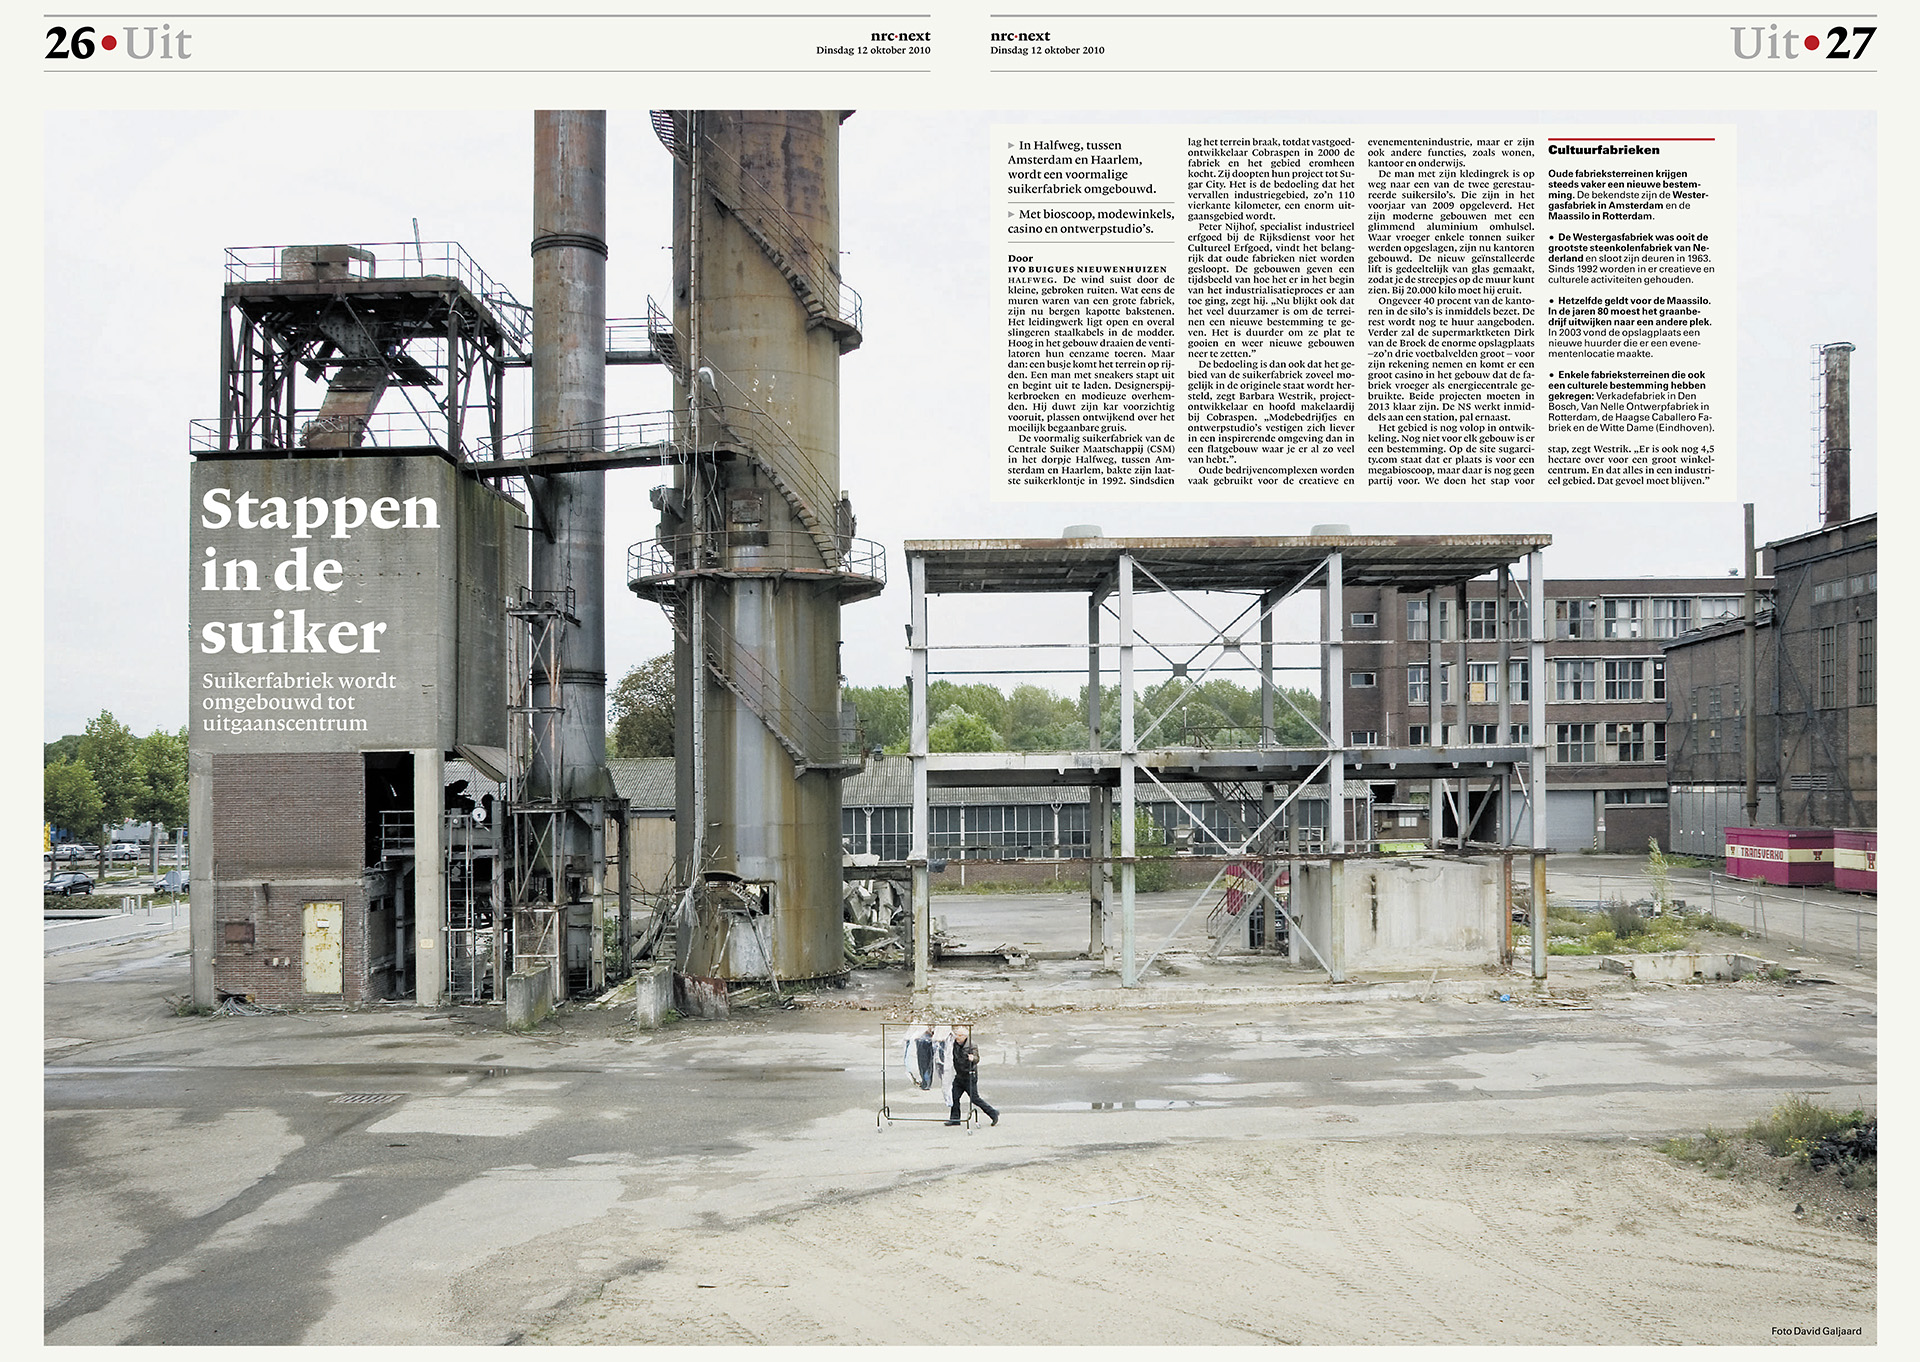 NRC Next - Suikerfabriek - David Galjaard